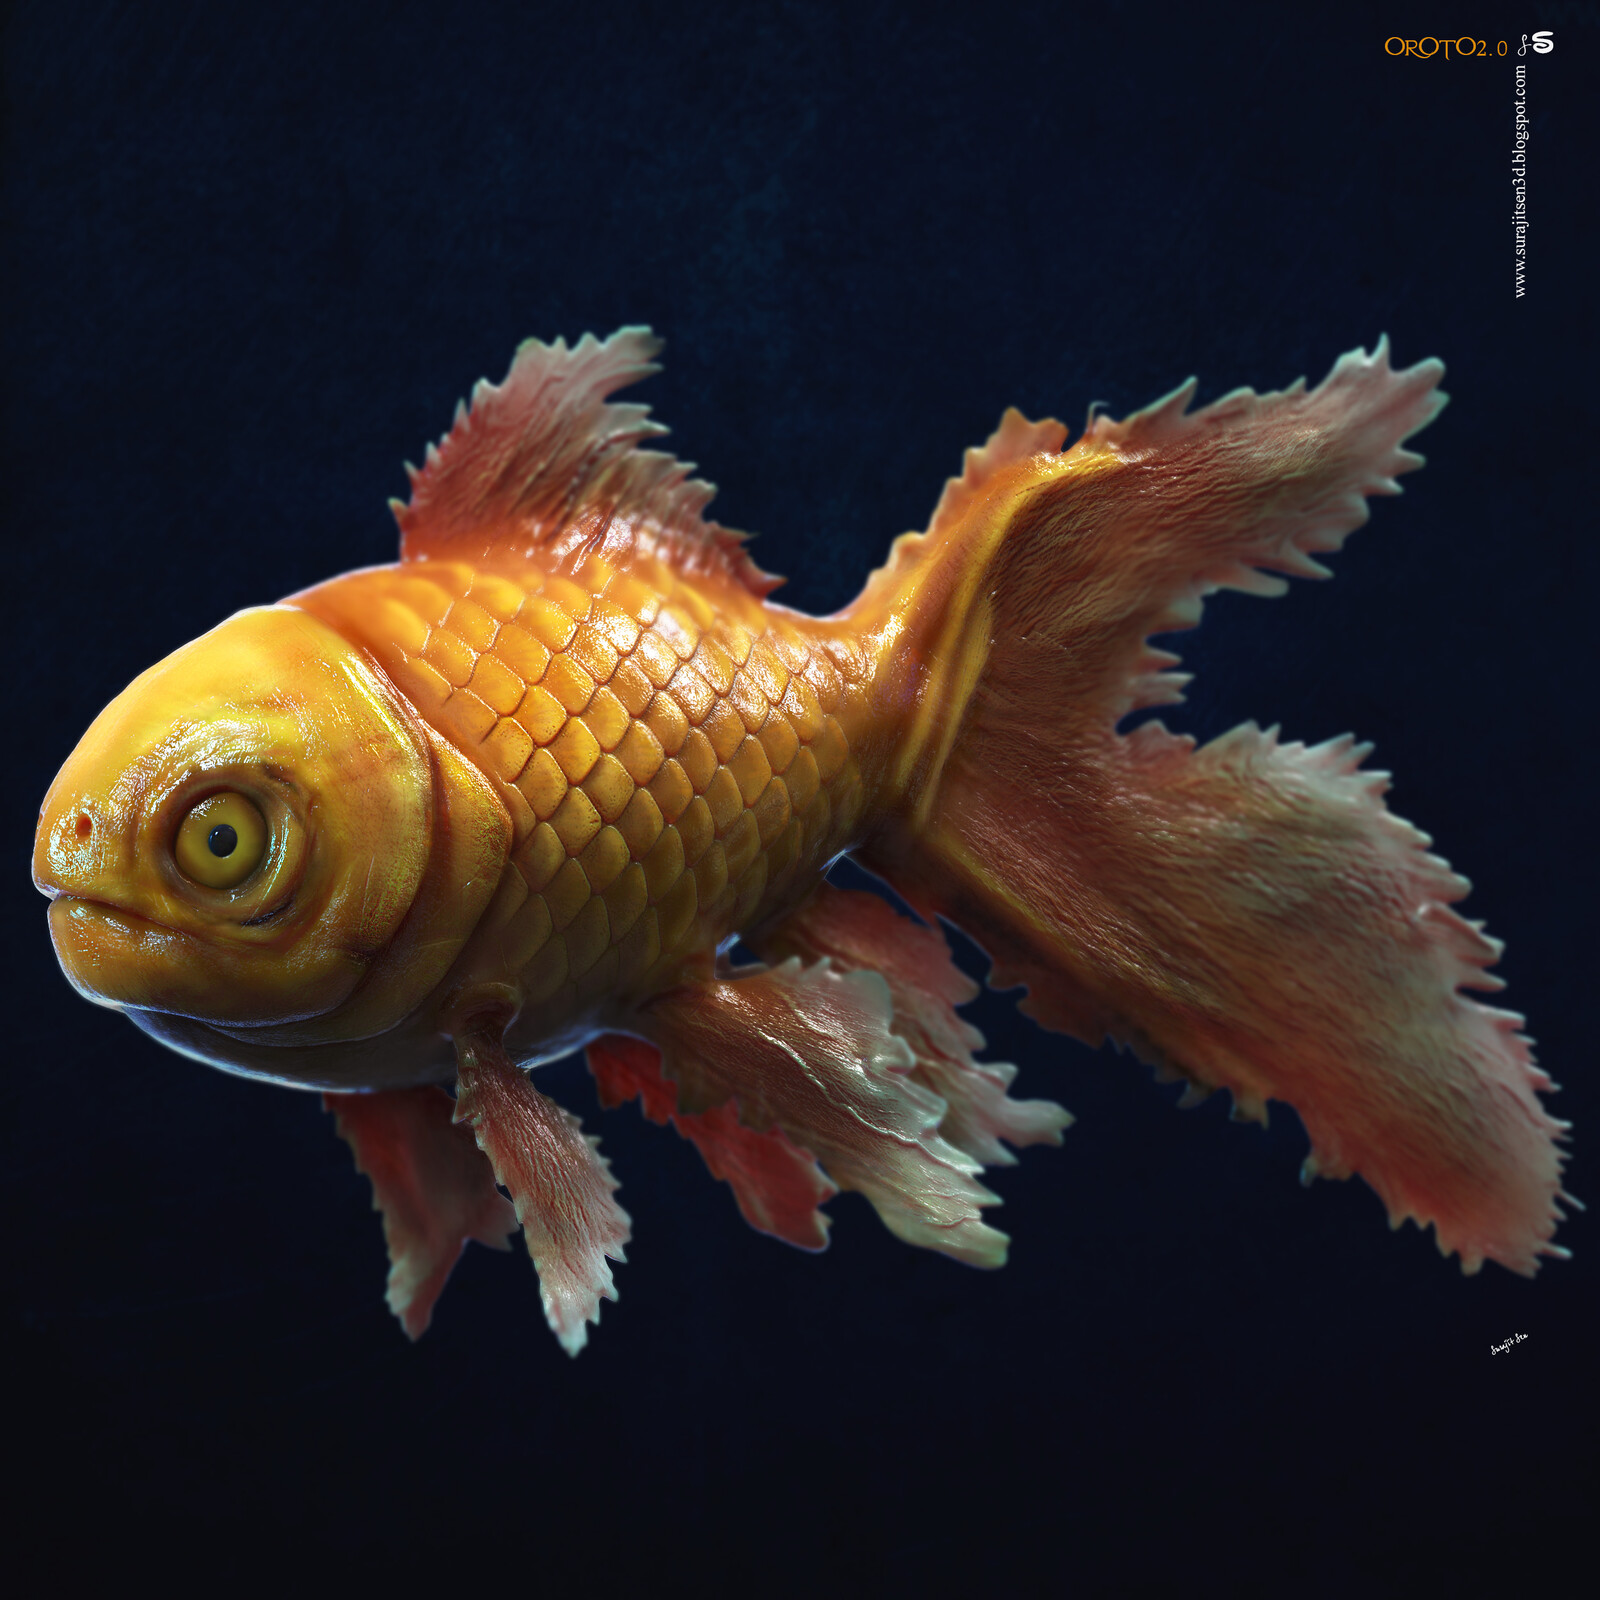 CG Fish My weekend R&D. Tried to make a form of my thoughts. Background music- #hanszimmermusic